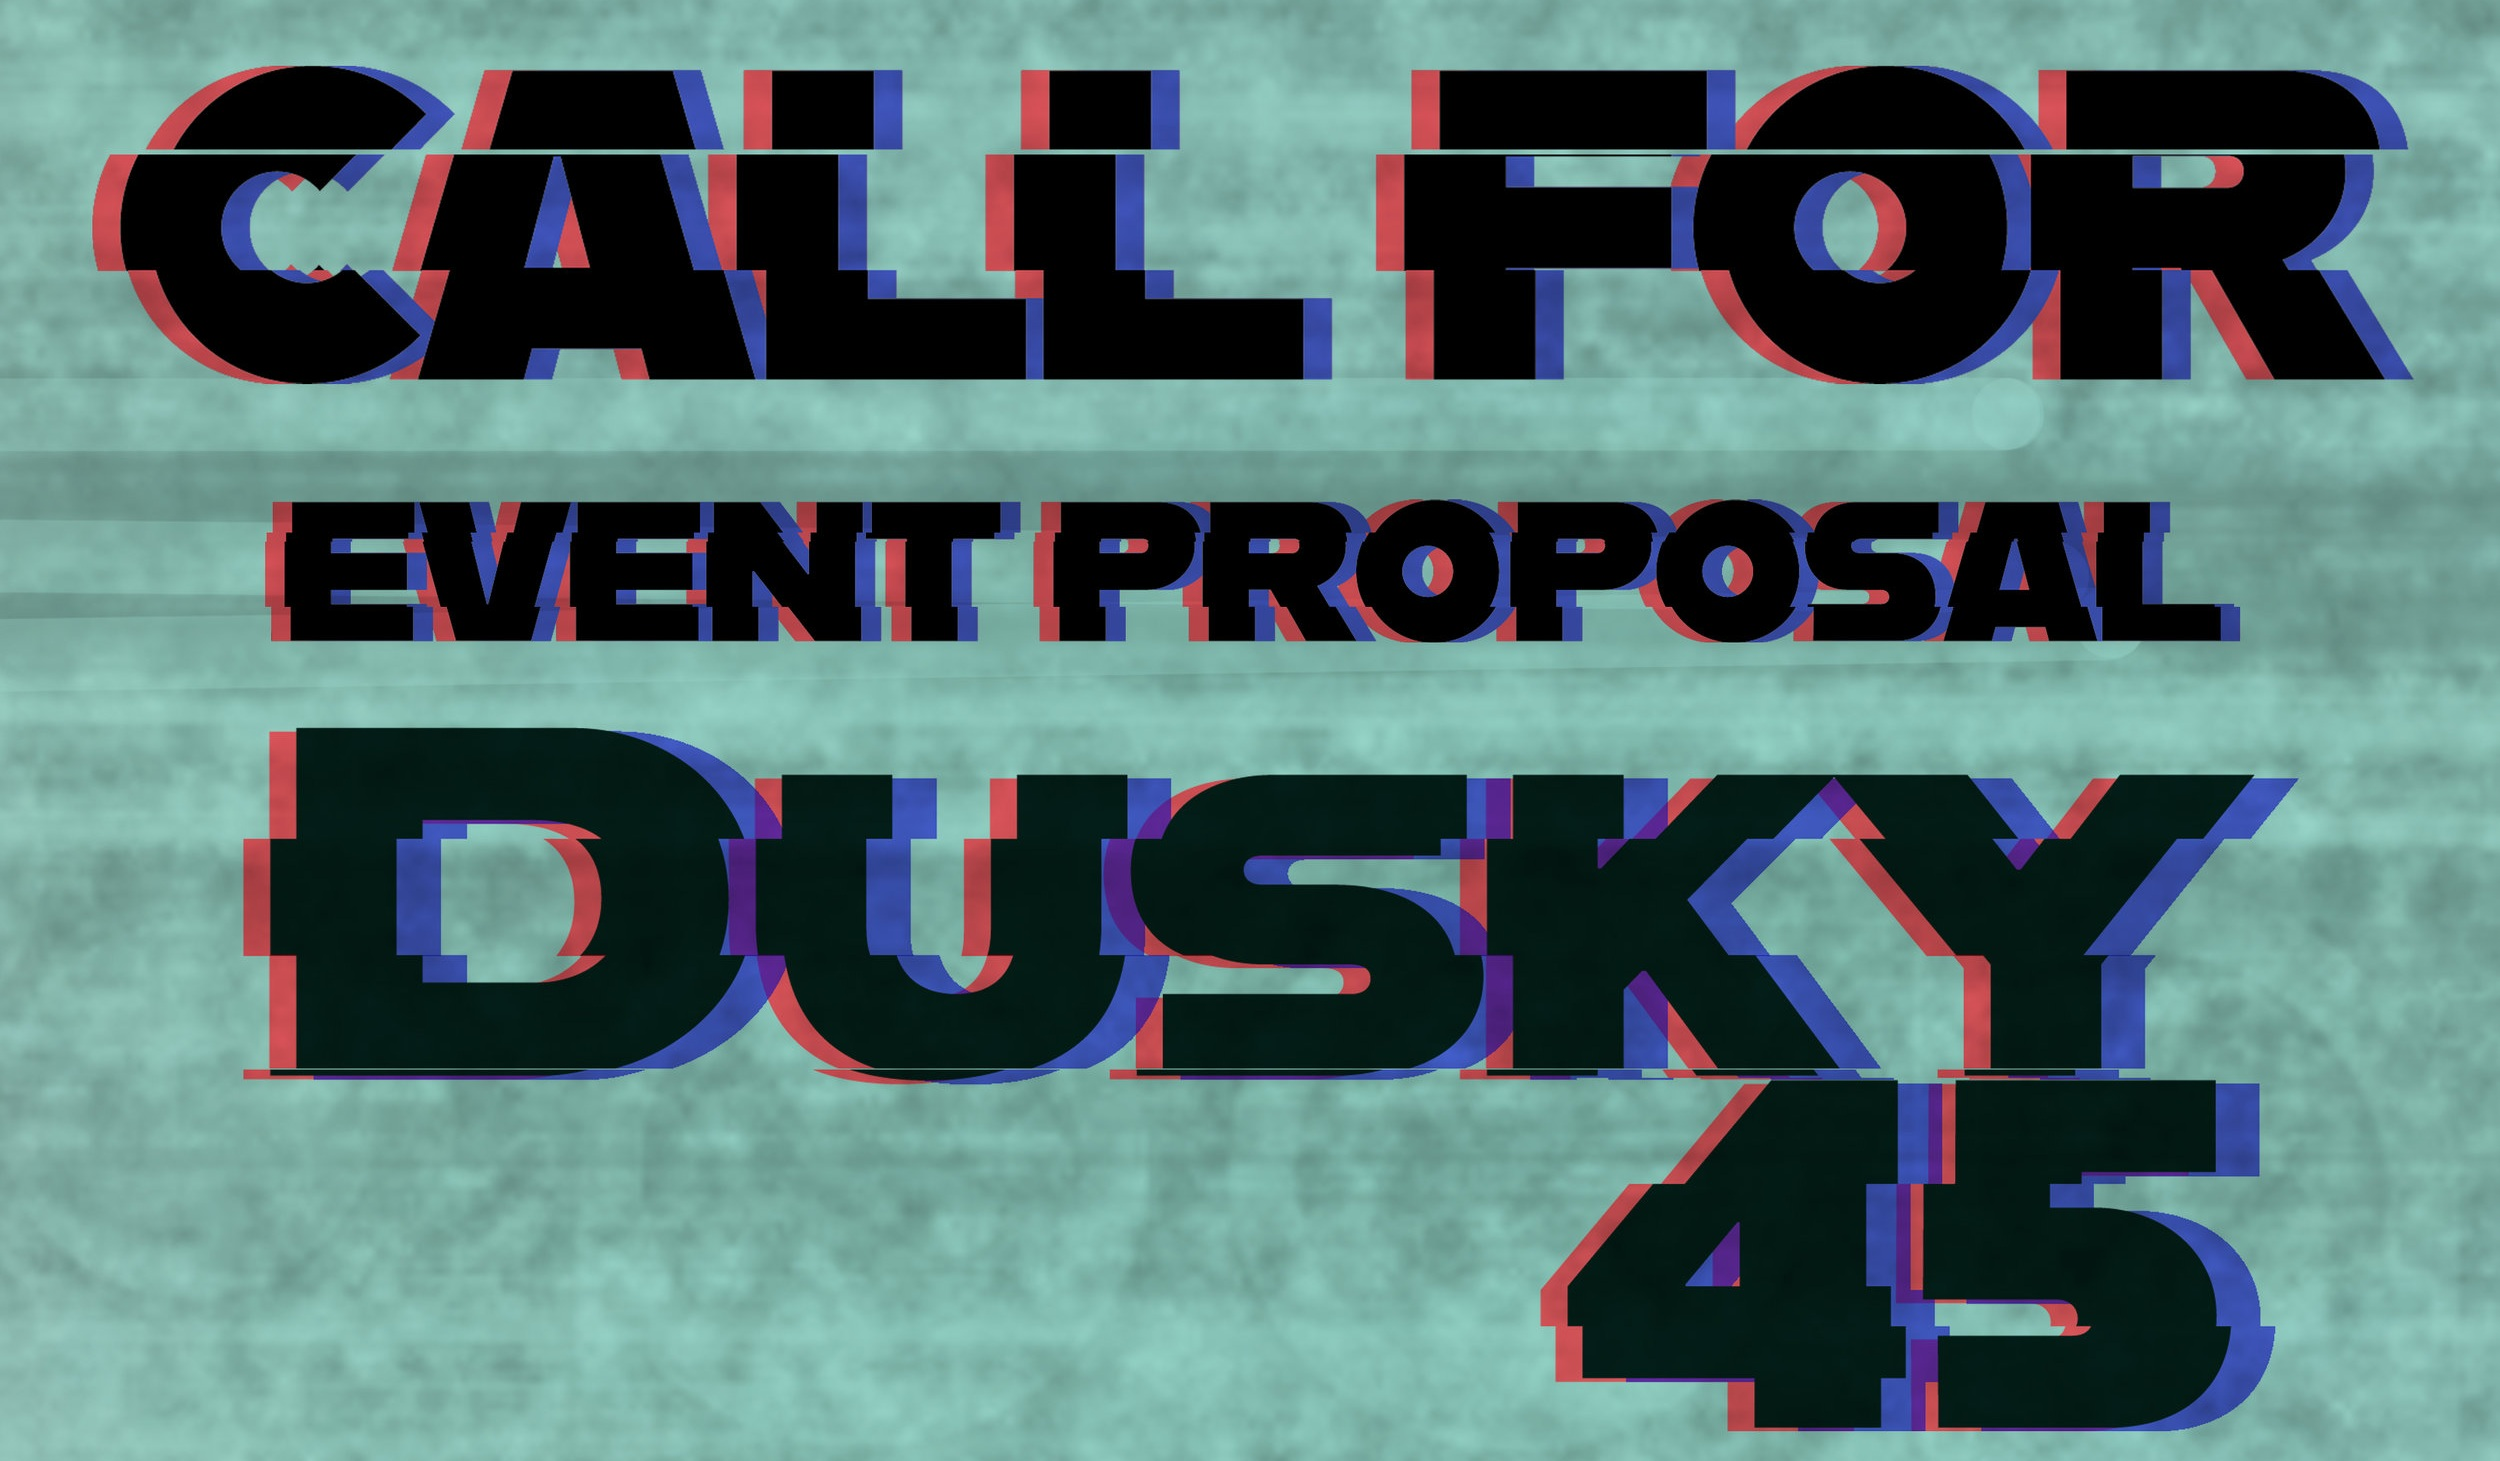 Dusky 45 Call for Even Proposal, FRESCO Collective.jpg